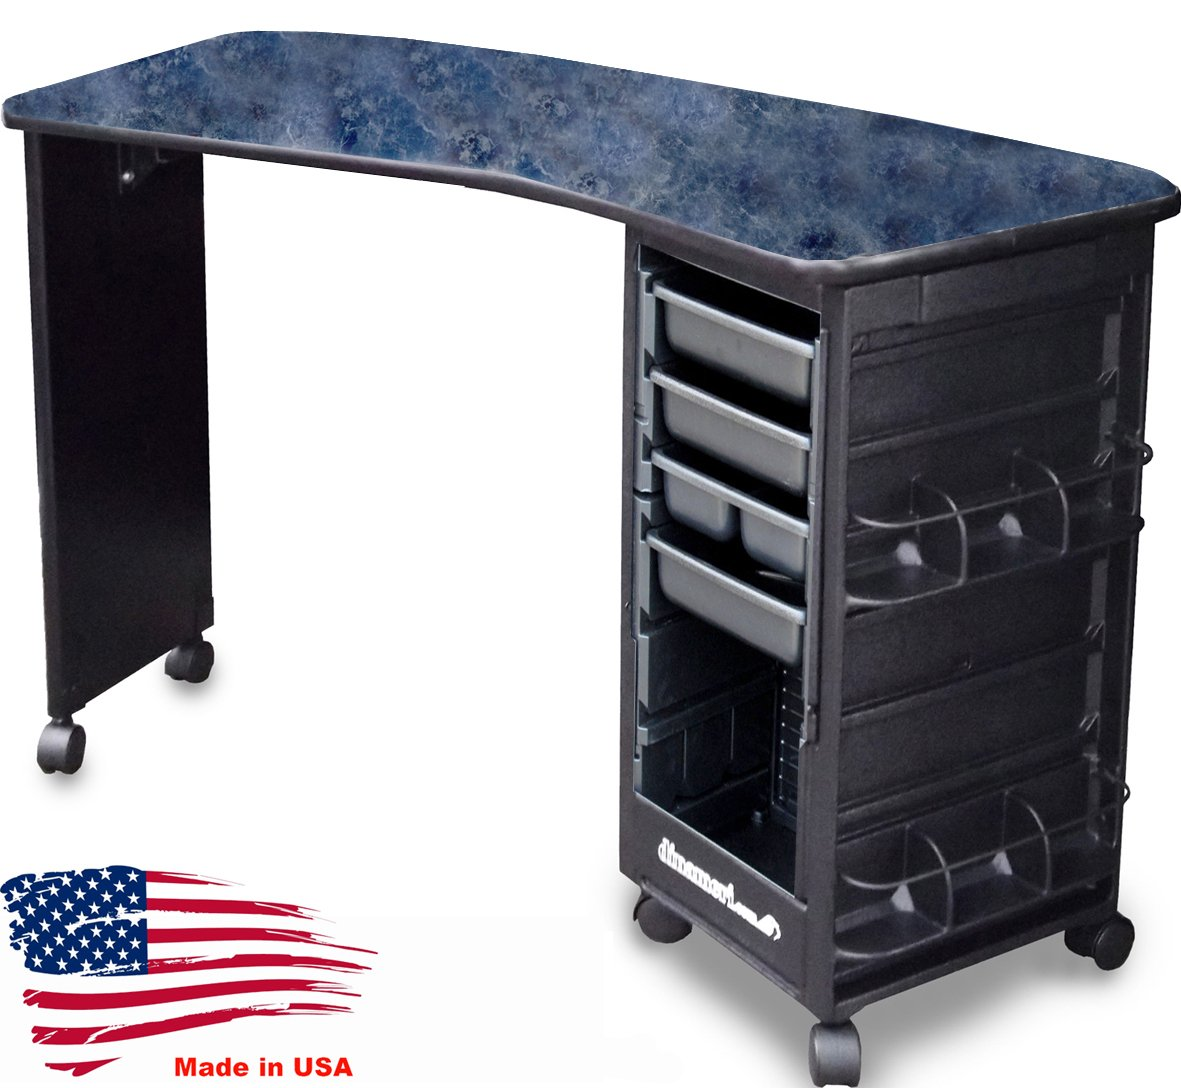 M600-E Econo Manicure Nail Table Curved Black Marble Lamininated Top Made in USA by Dina Meri by Dina Meri (Image #1)